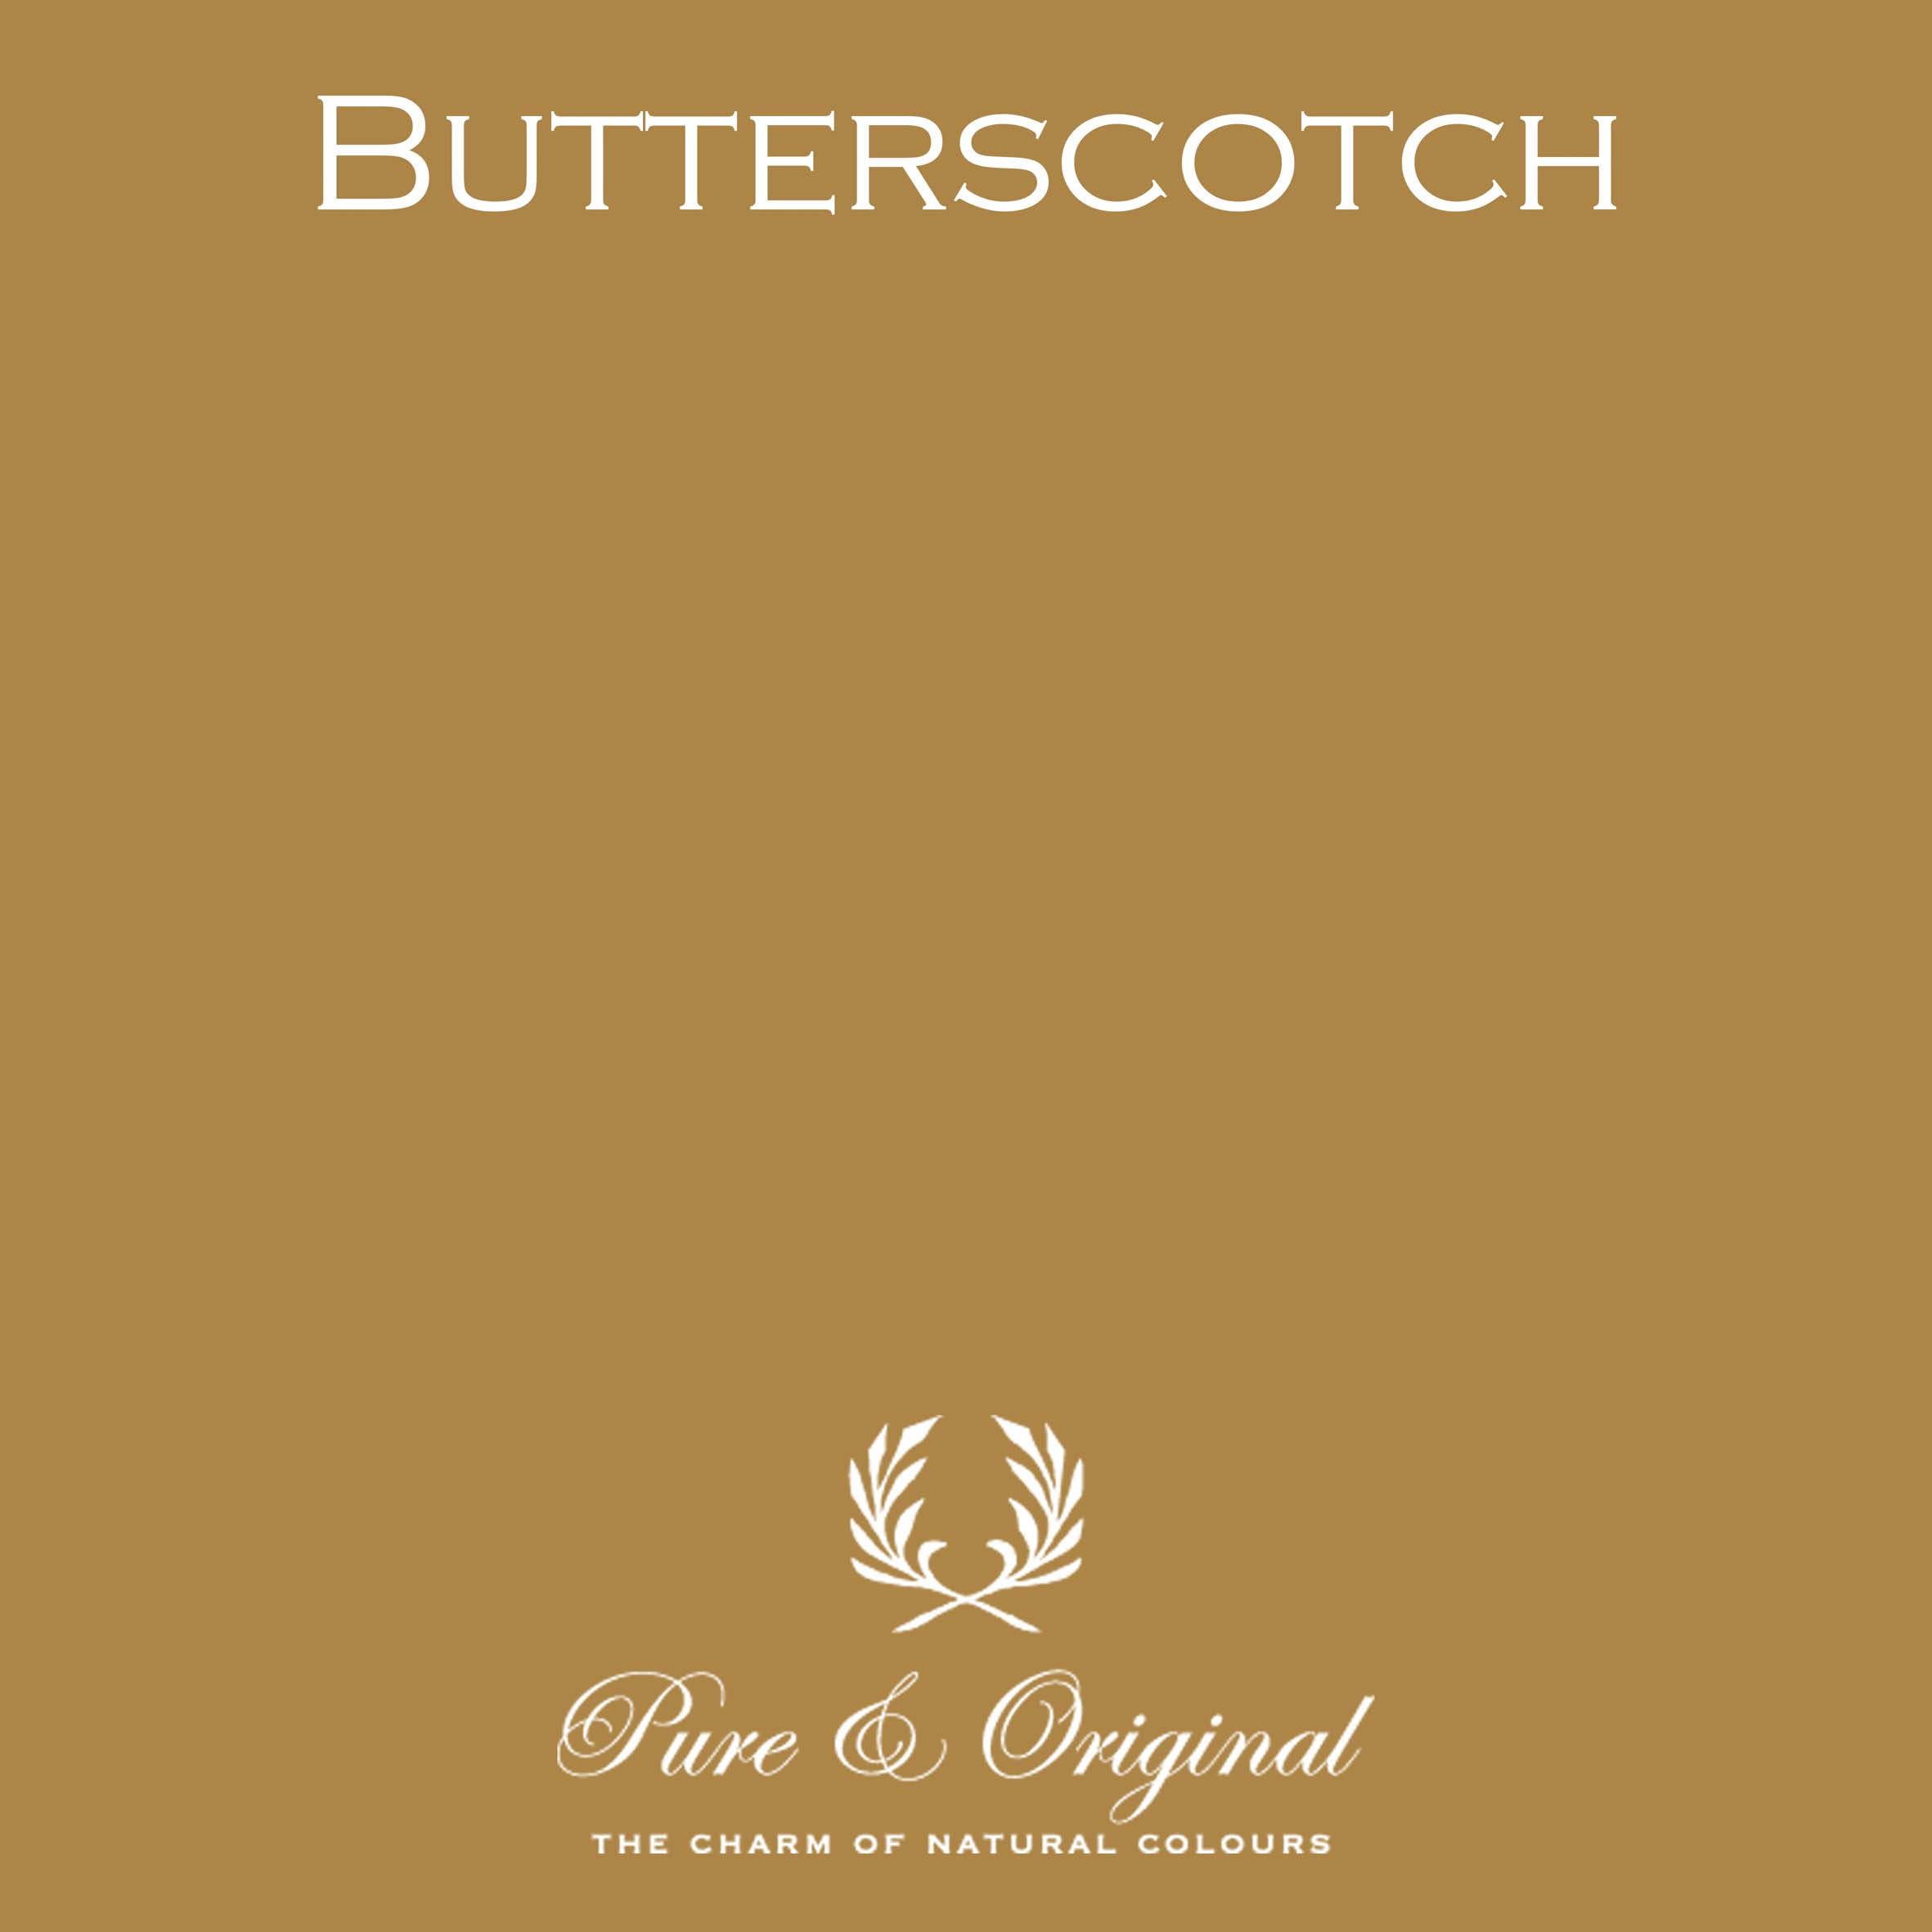 Pure & Original colour Butterscotch